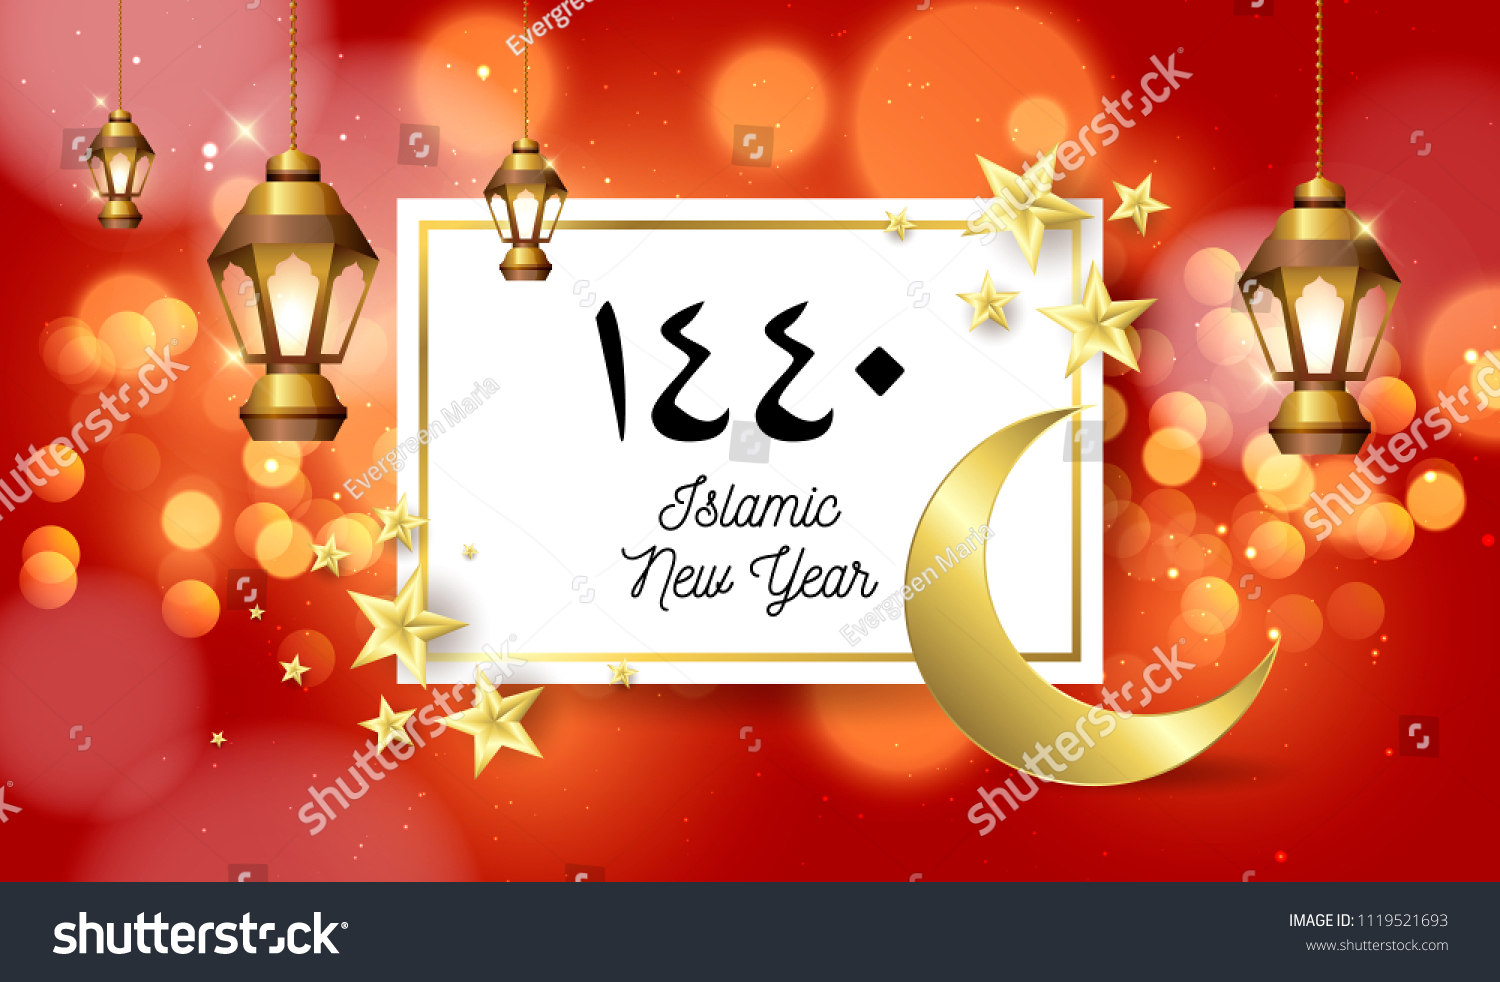 1440 Hijri Islamic New Year Happy Stock Vector Royalty Free